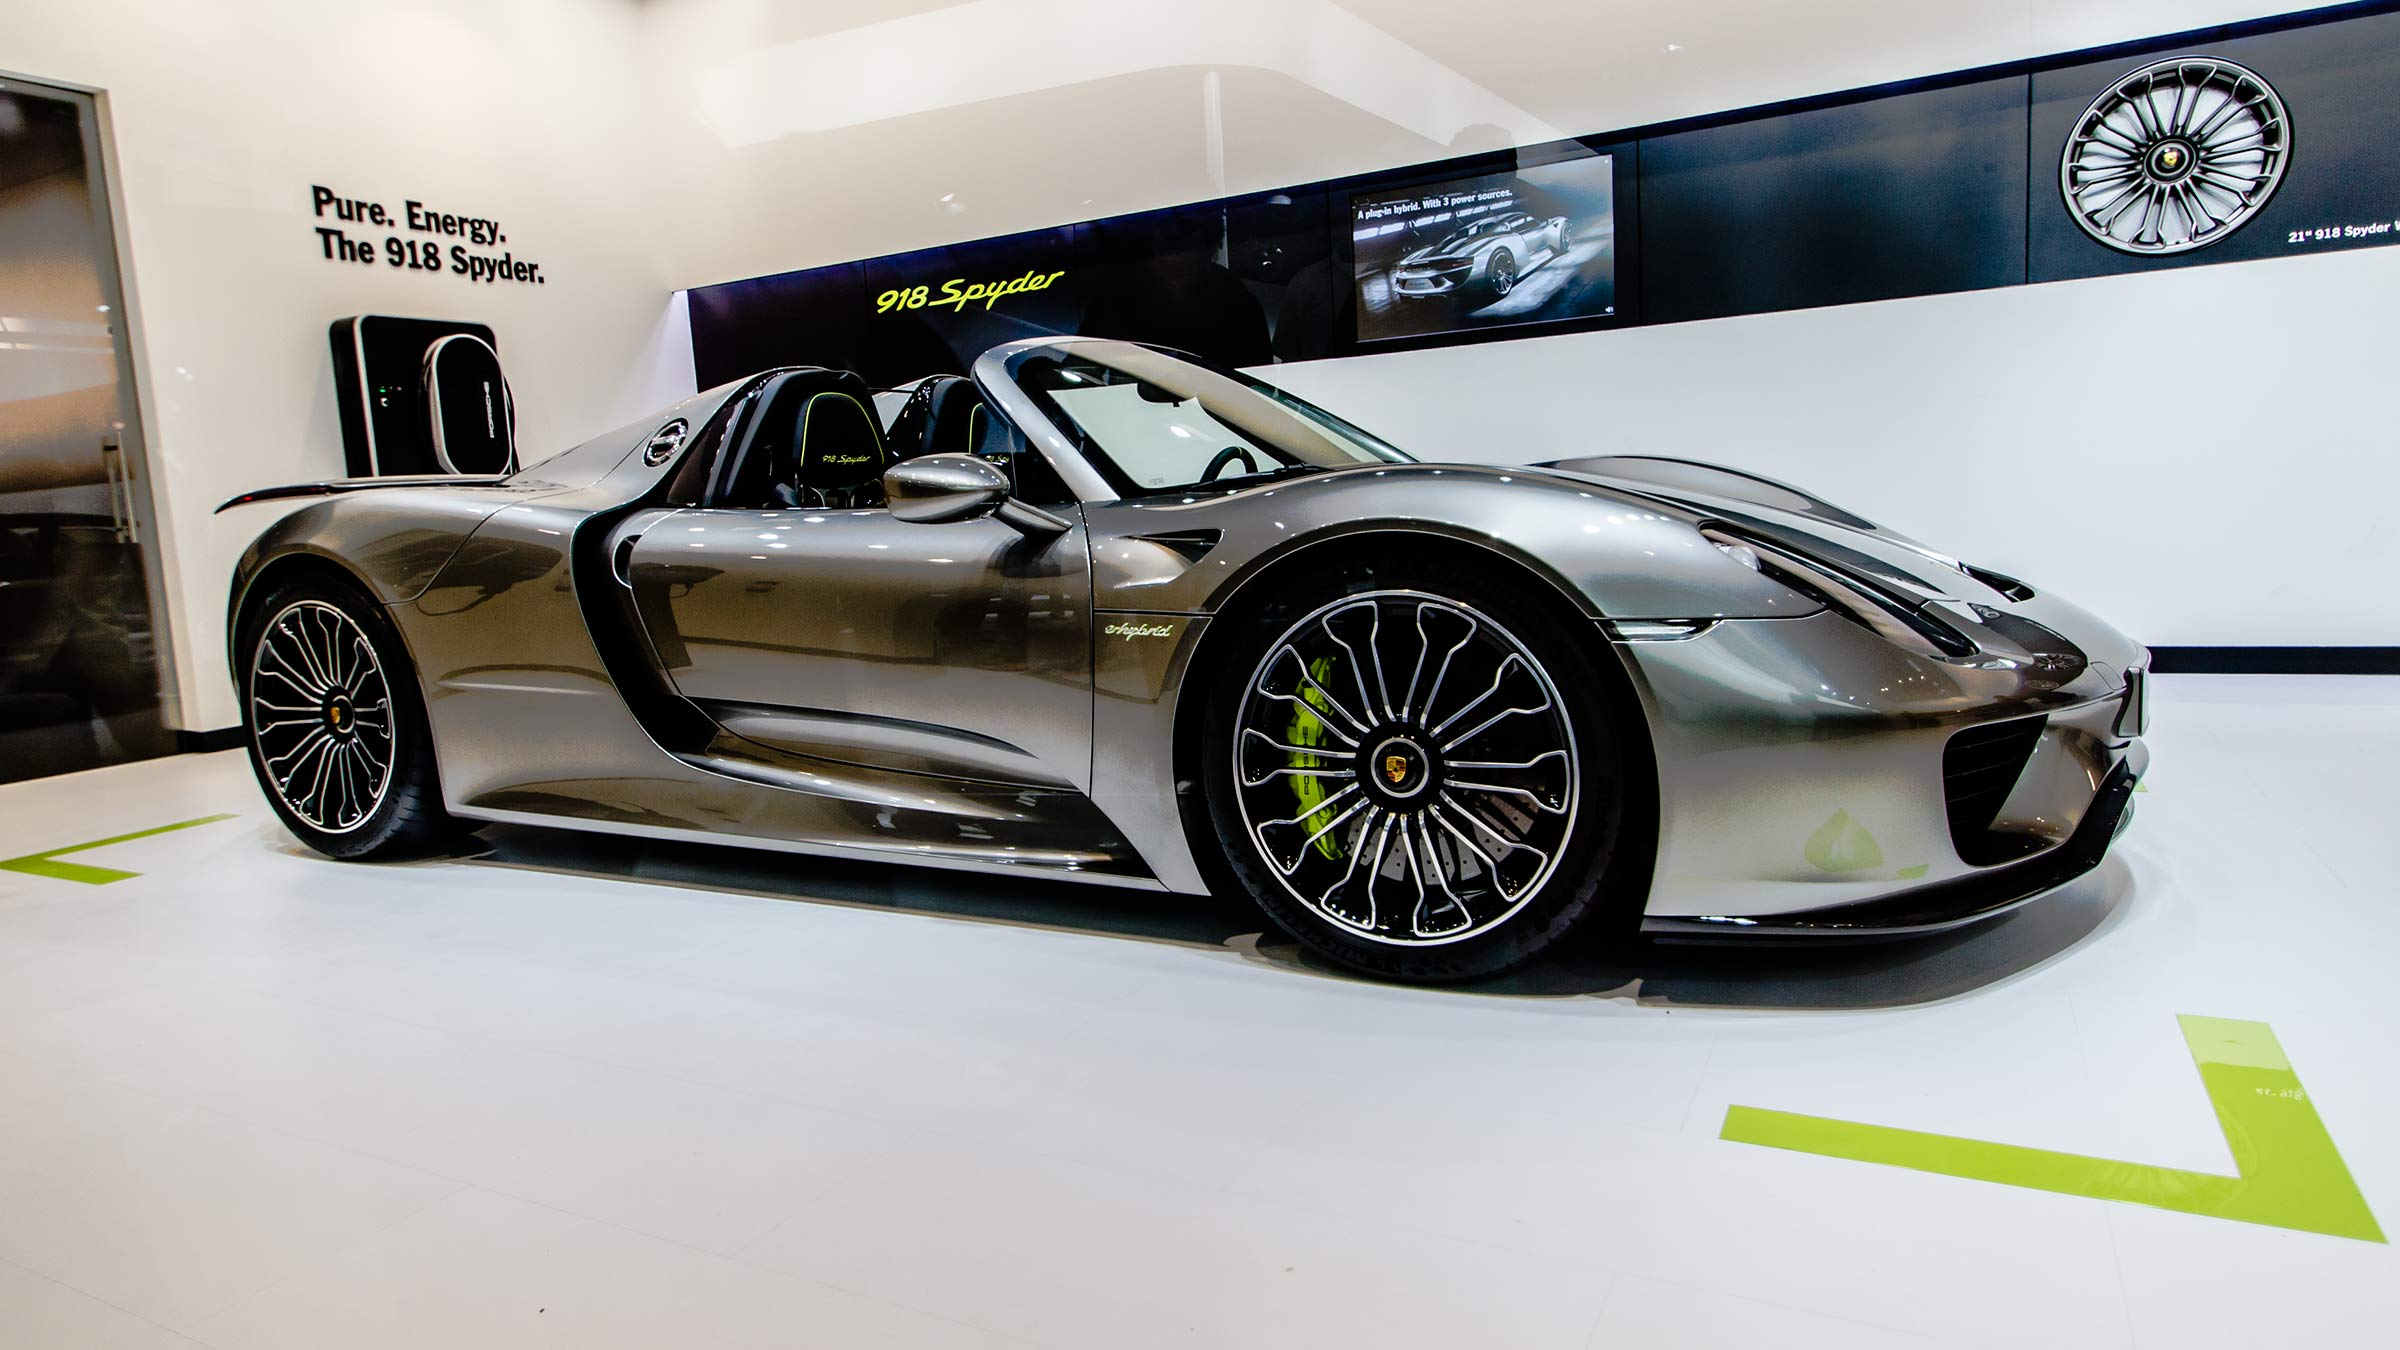 file porsche 918 spyder la auto show wikimedia. Black Bedroom Furniture Sets. Home Design Ideas